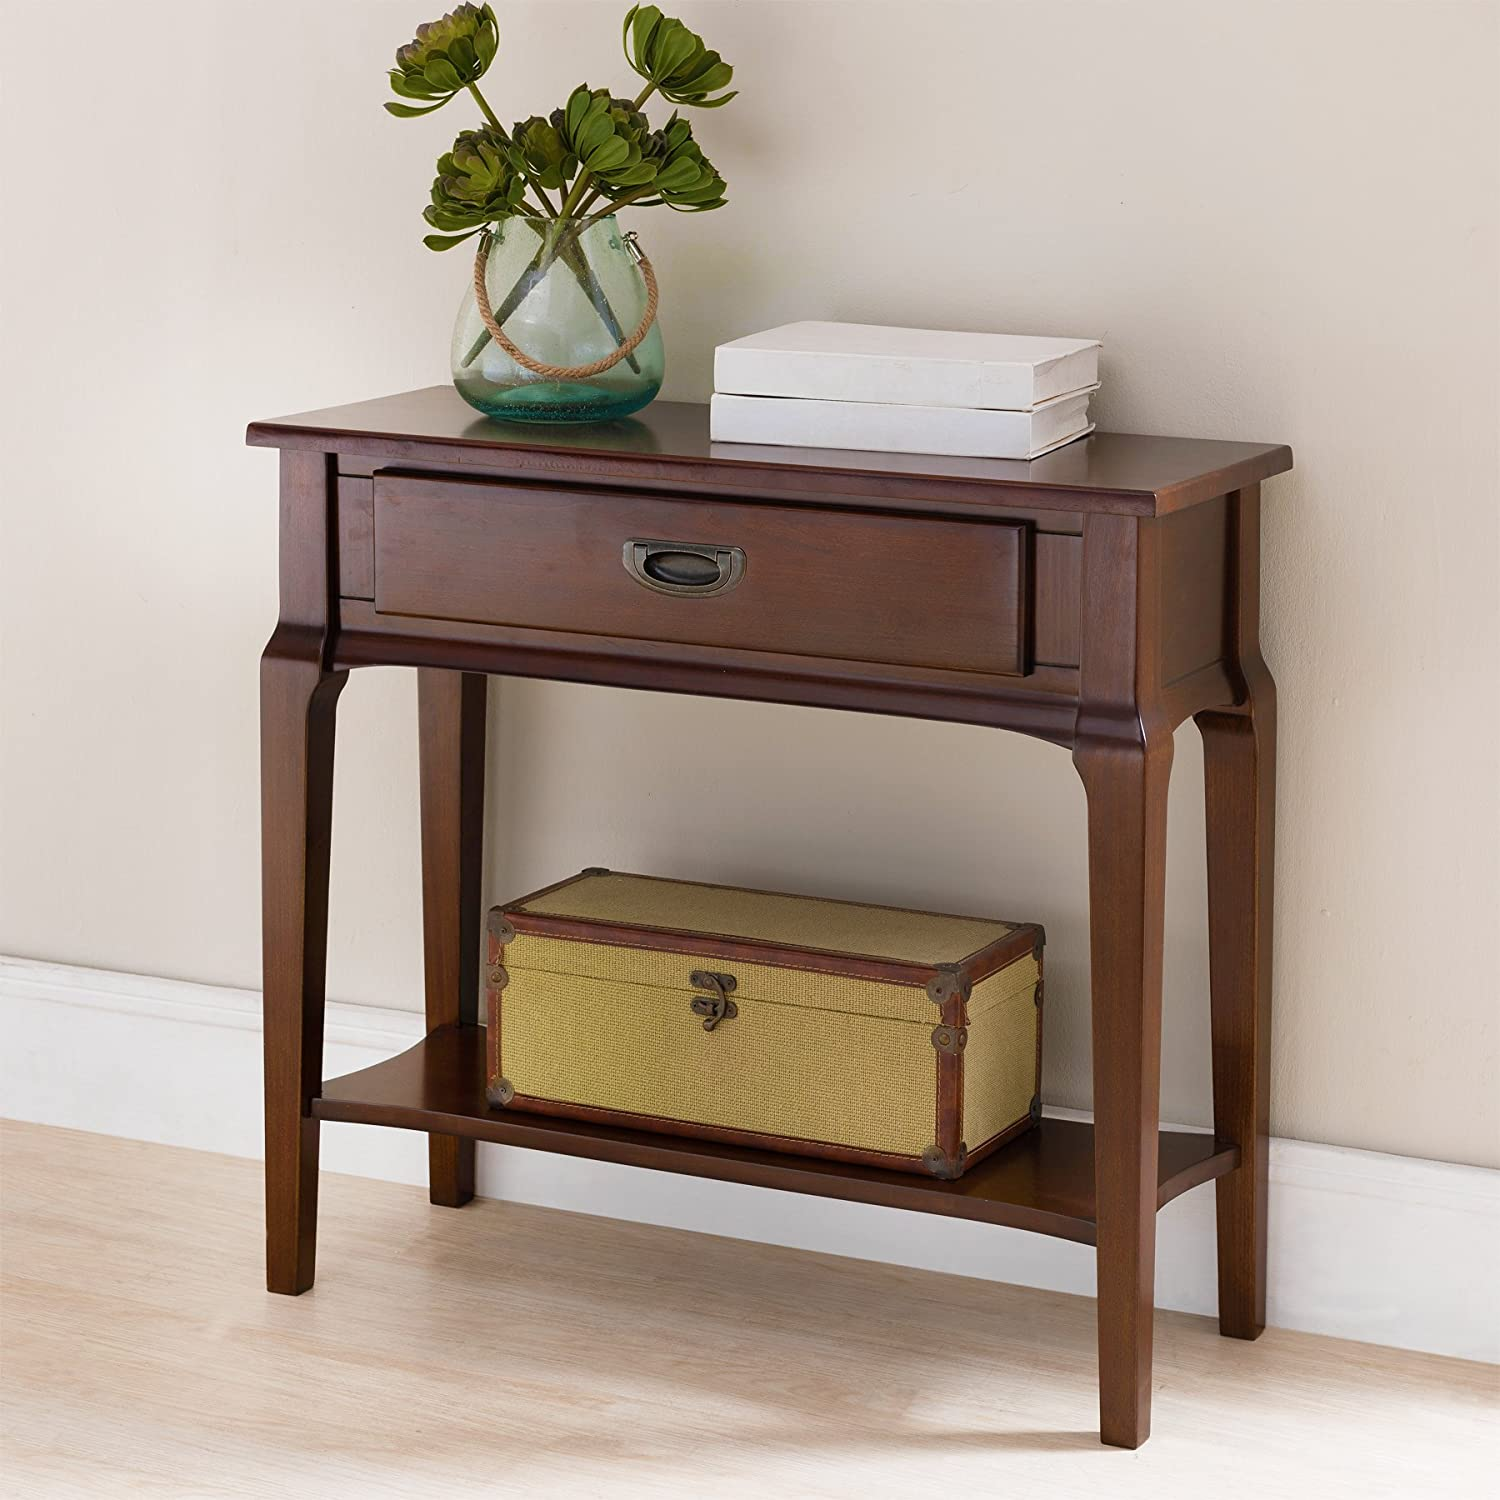 Leick 22032 Contemporary Stratus Condo Apartment Hall Stand with Drawer